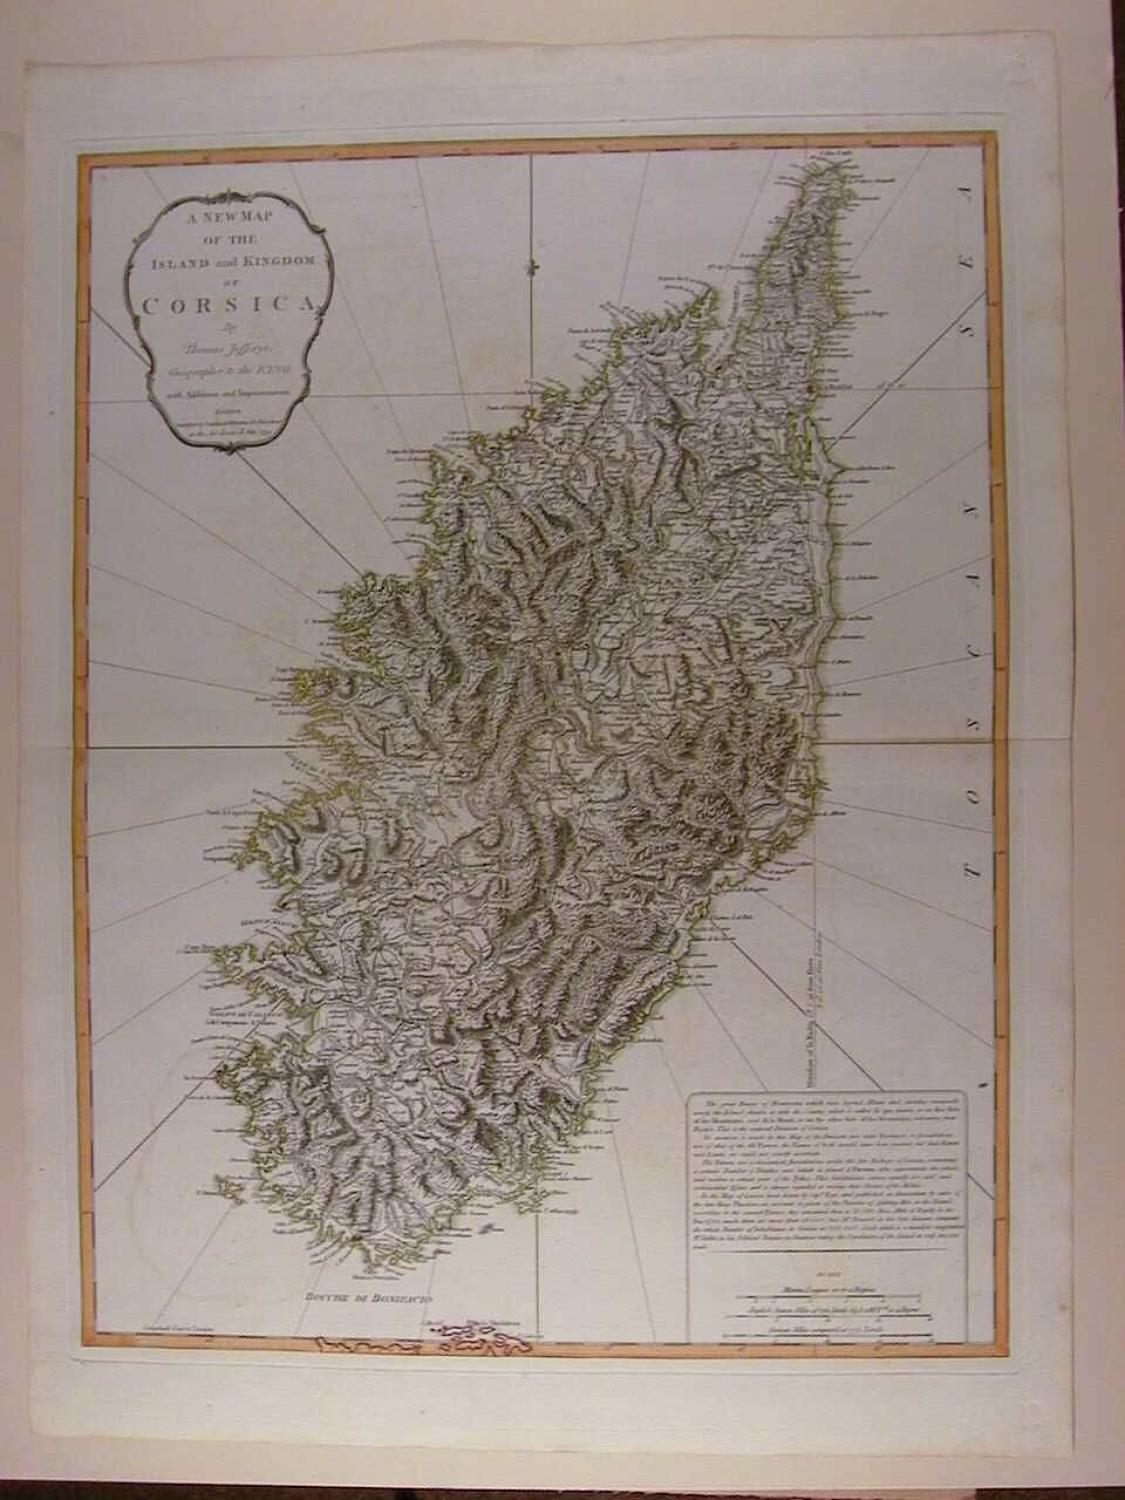 A New Map of the Island and Kingdom of Corsica by Thomas Jefferys